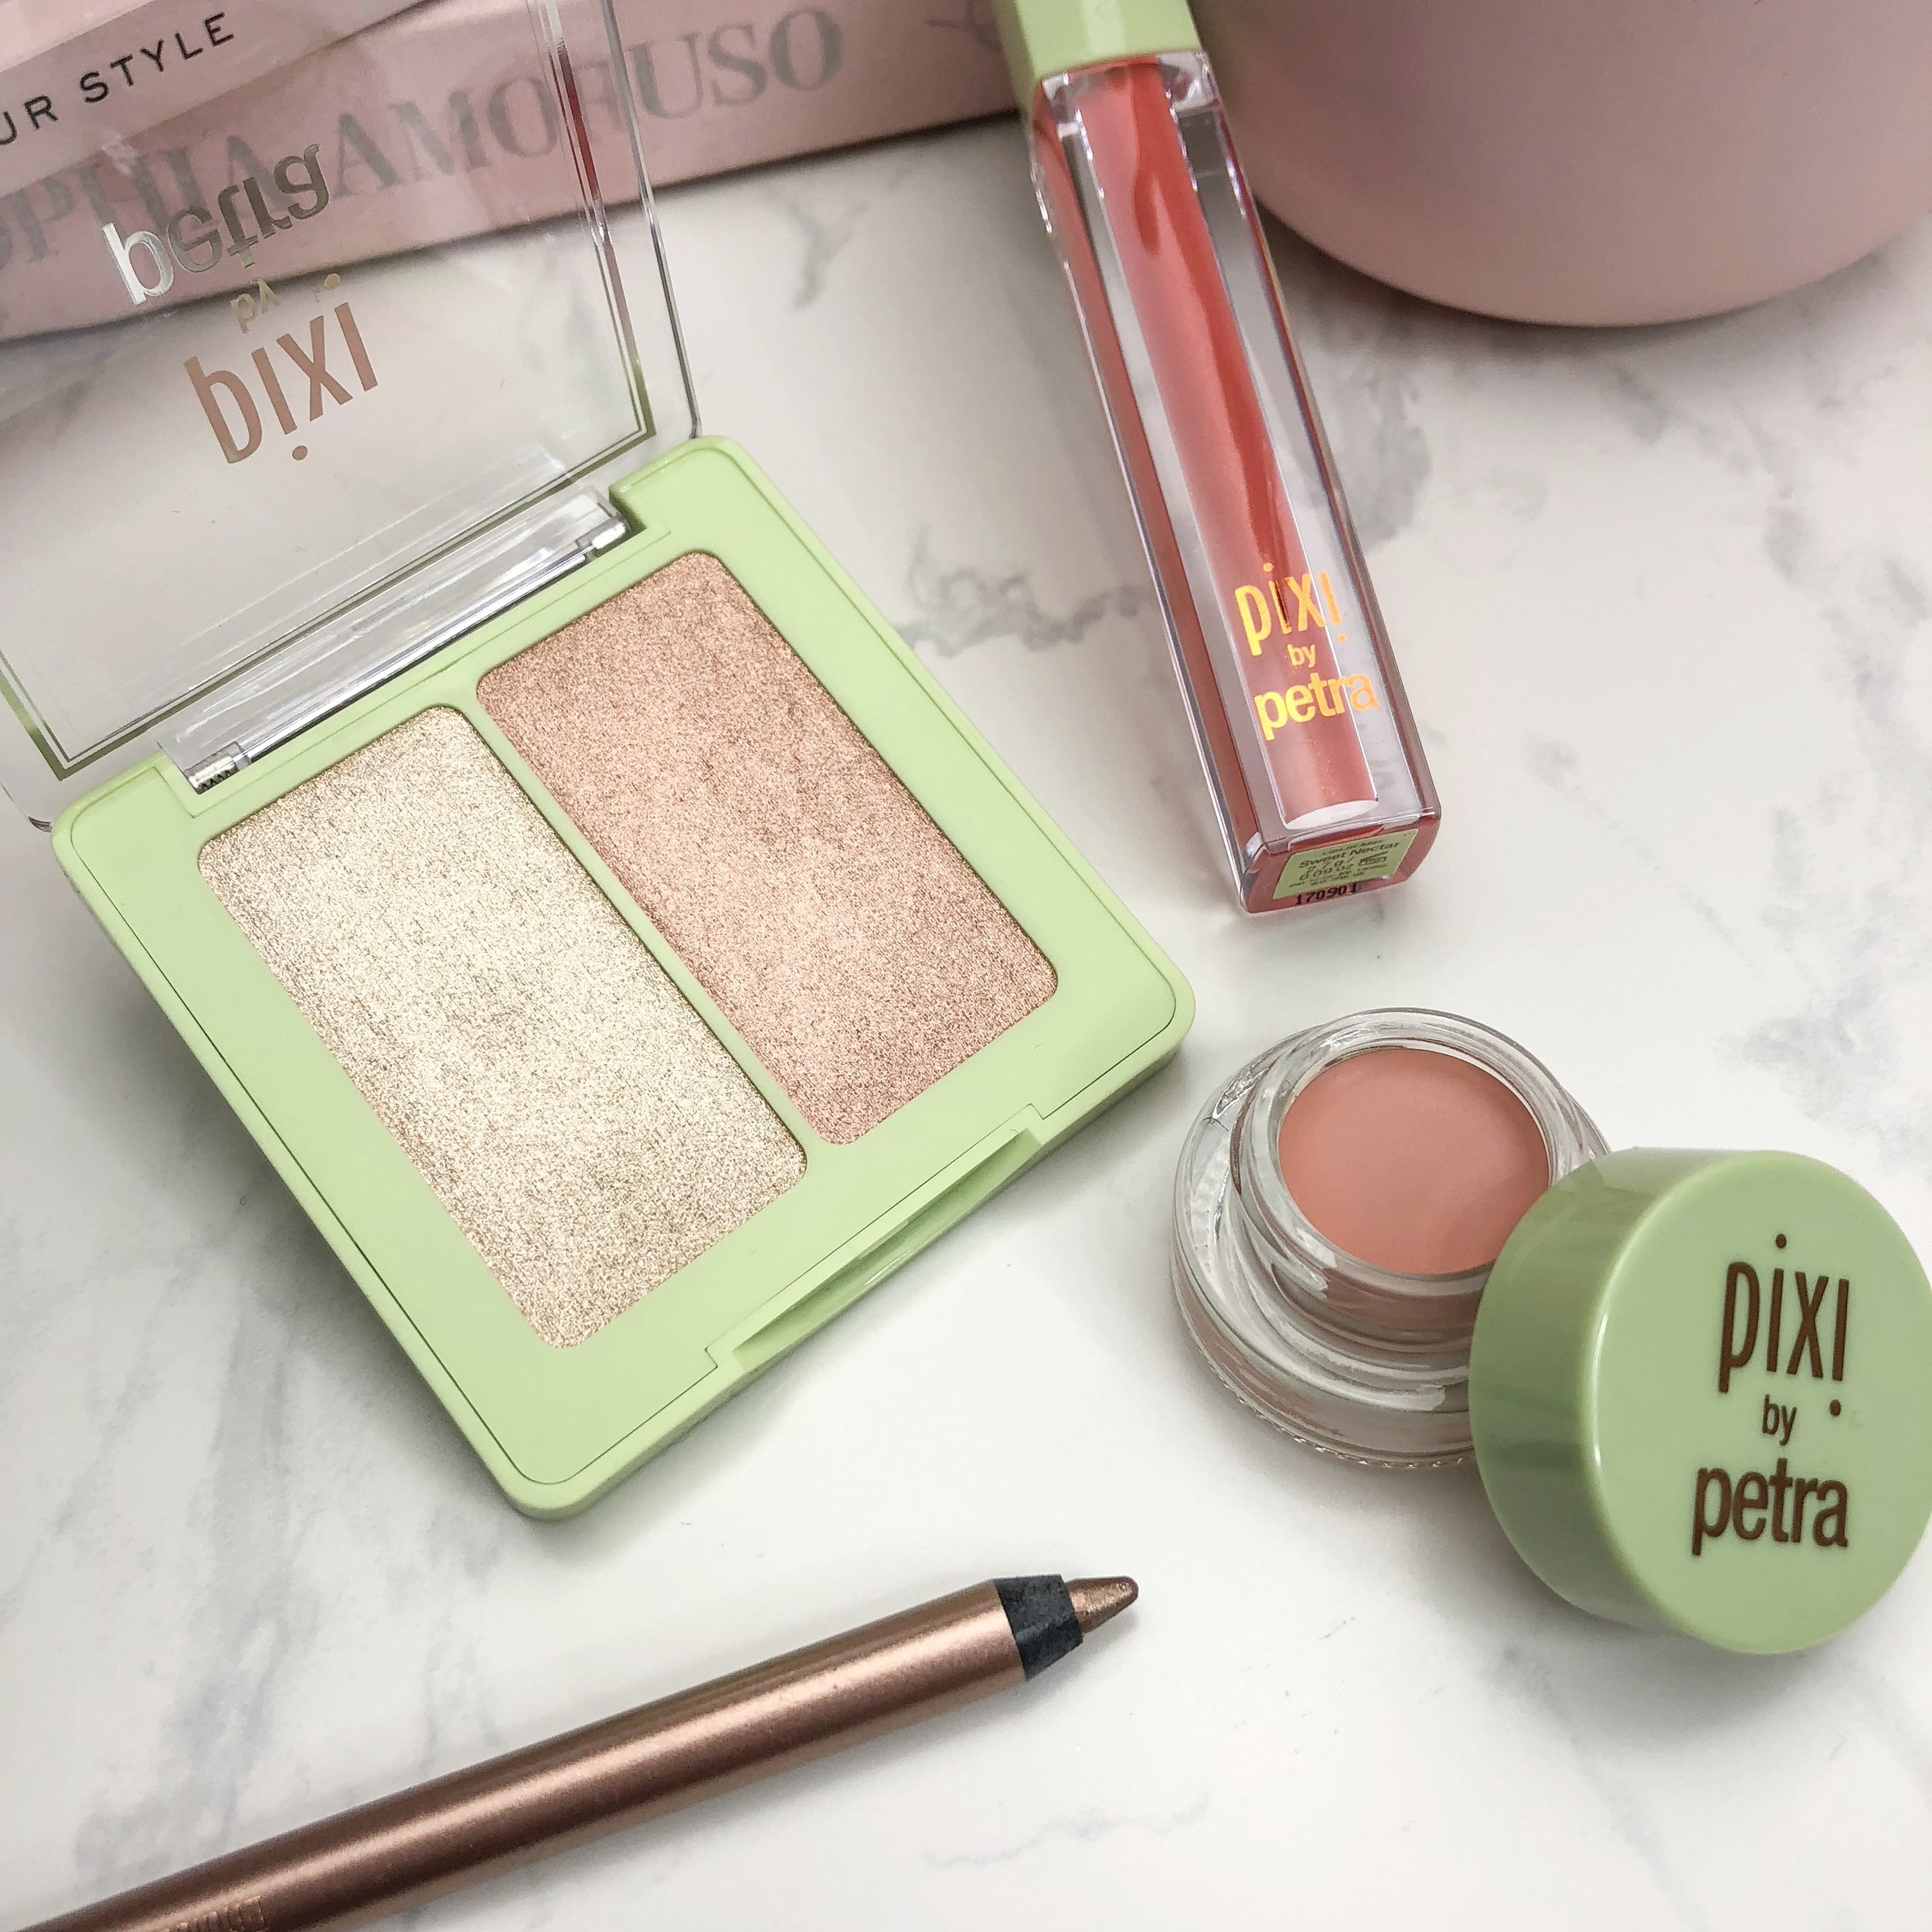 Pixi Beauty Makeup Review Swatches